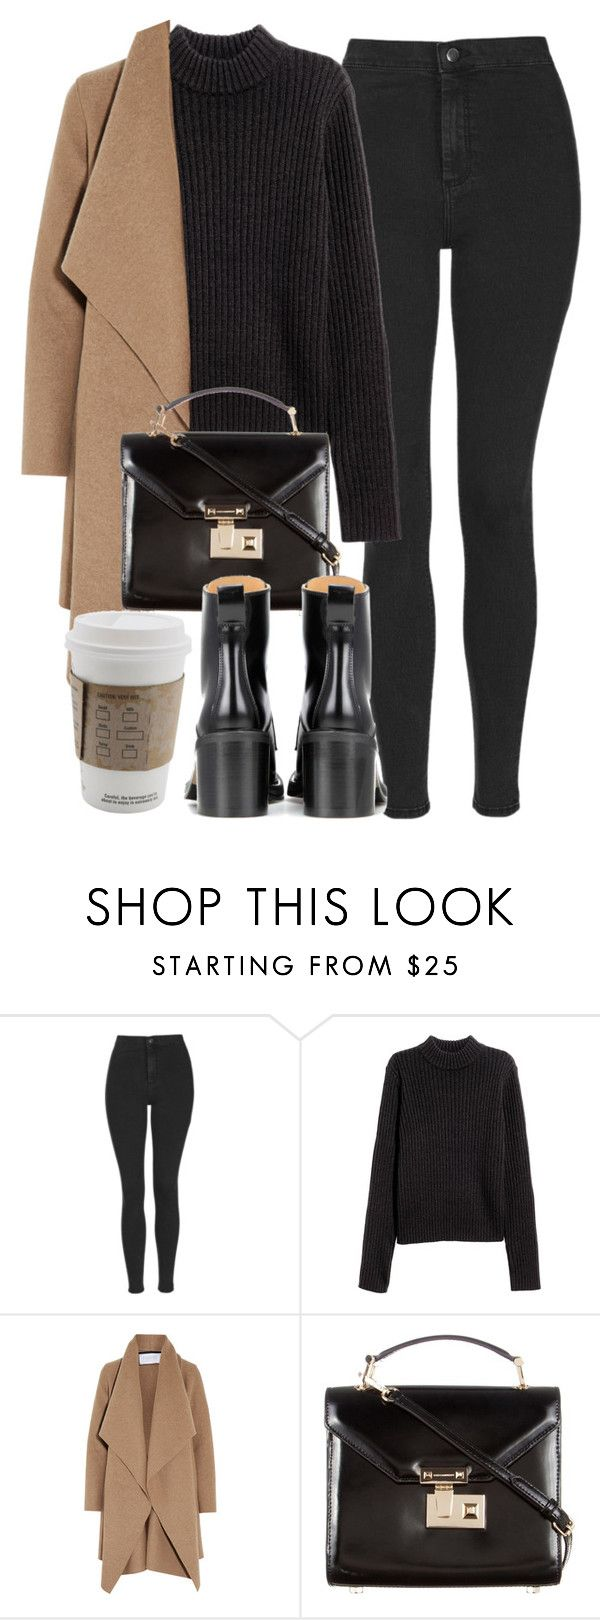 """""""Untitled #6183"""" by laurenmboot ❤ liked on Polyvore featuring Topshop, Harris Wharf London, Rebecca Minkoff and rag & bone"""